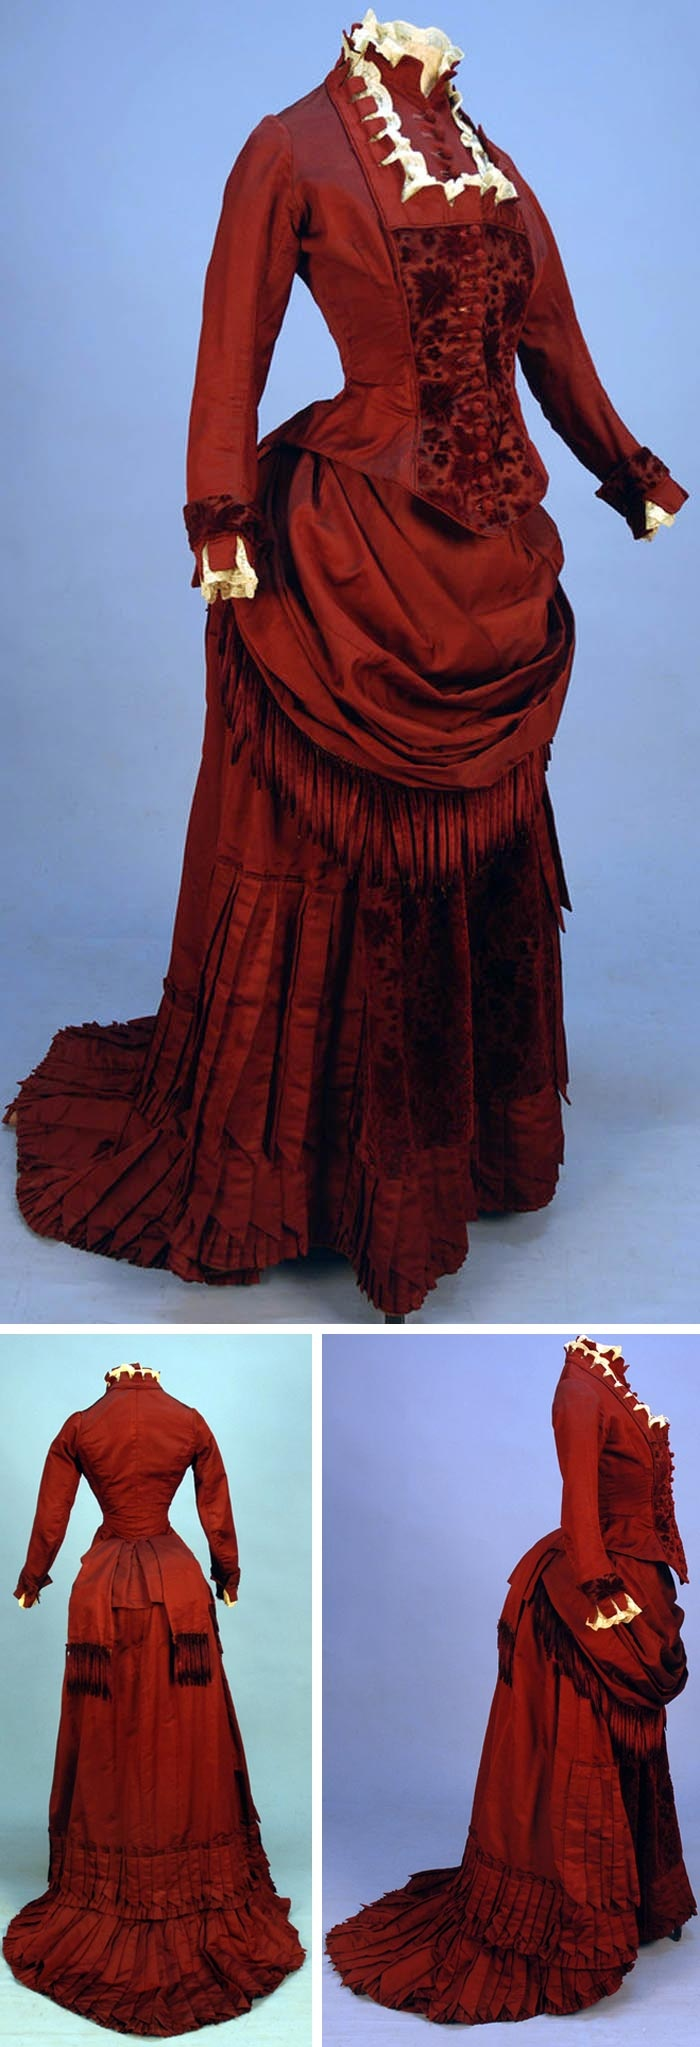 I so like this! Can't wait to dress one of my characters in it............Circa 1880 silk and velvet bustle dress with fringe, claret-colored ottoman with self-piping, lace, and crenelated trim at neck, Bib front and cuff, floral cut velvet bodice, and skirt front panel. Draped skirt trimmed in chenille fringe and pointed pleats, crocheted buttons, and polished cotton lining. Via Whitaker Auctions.